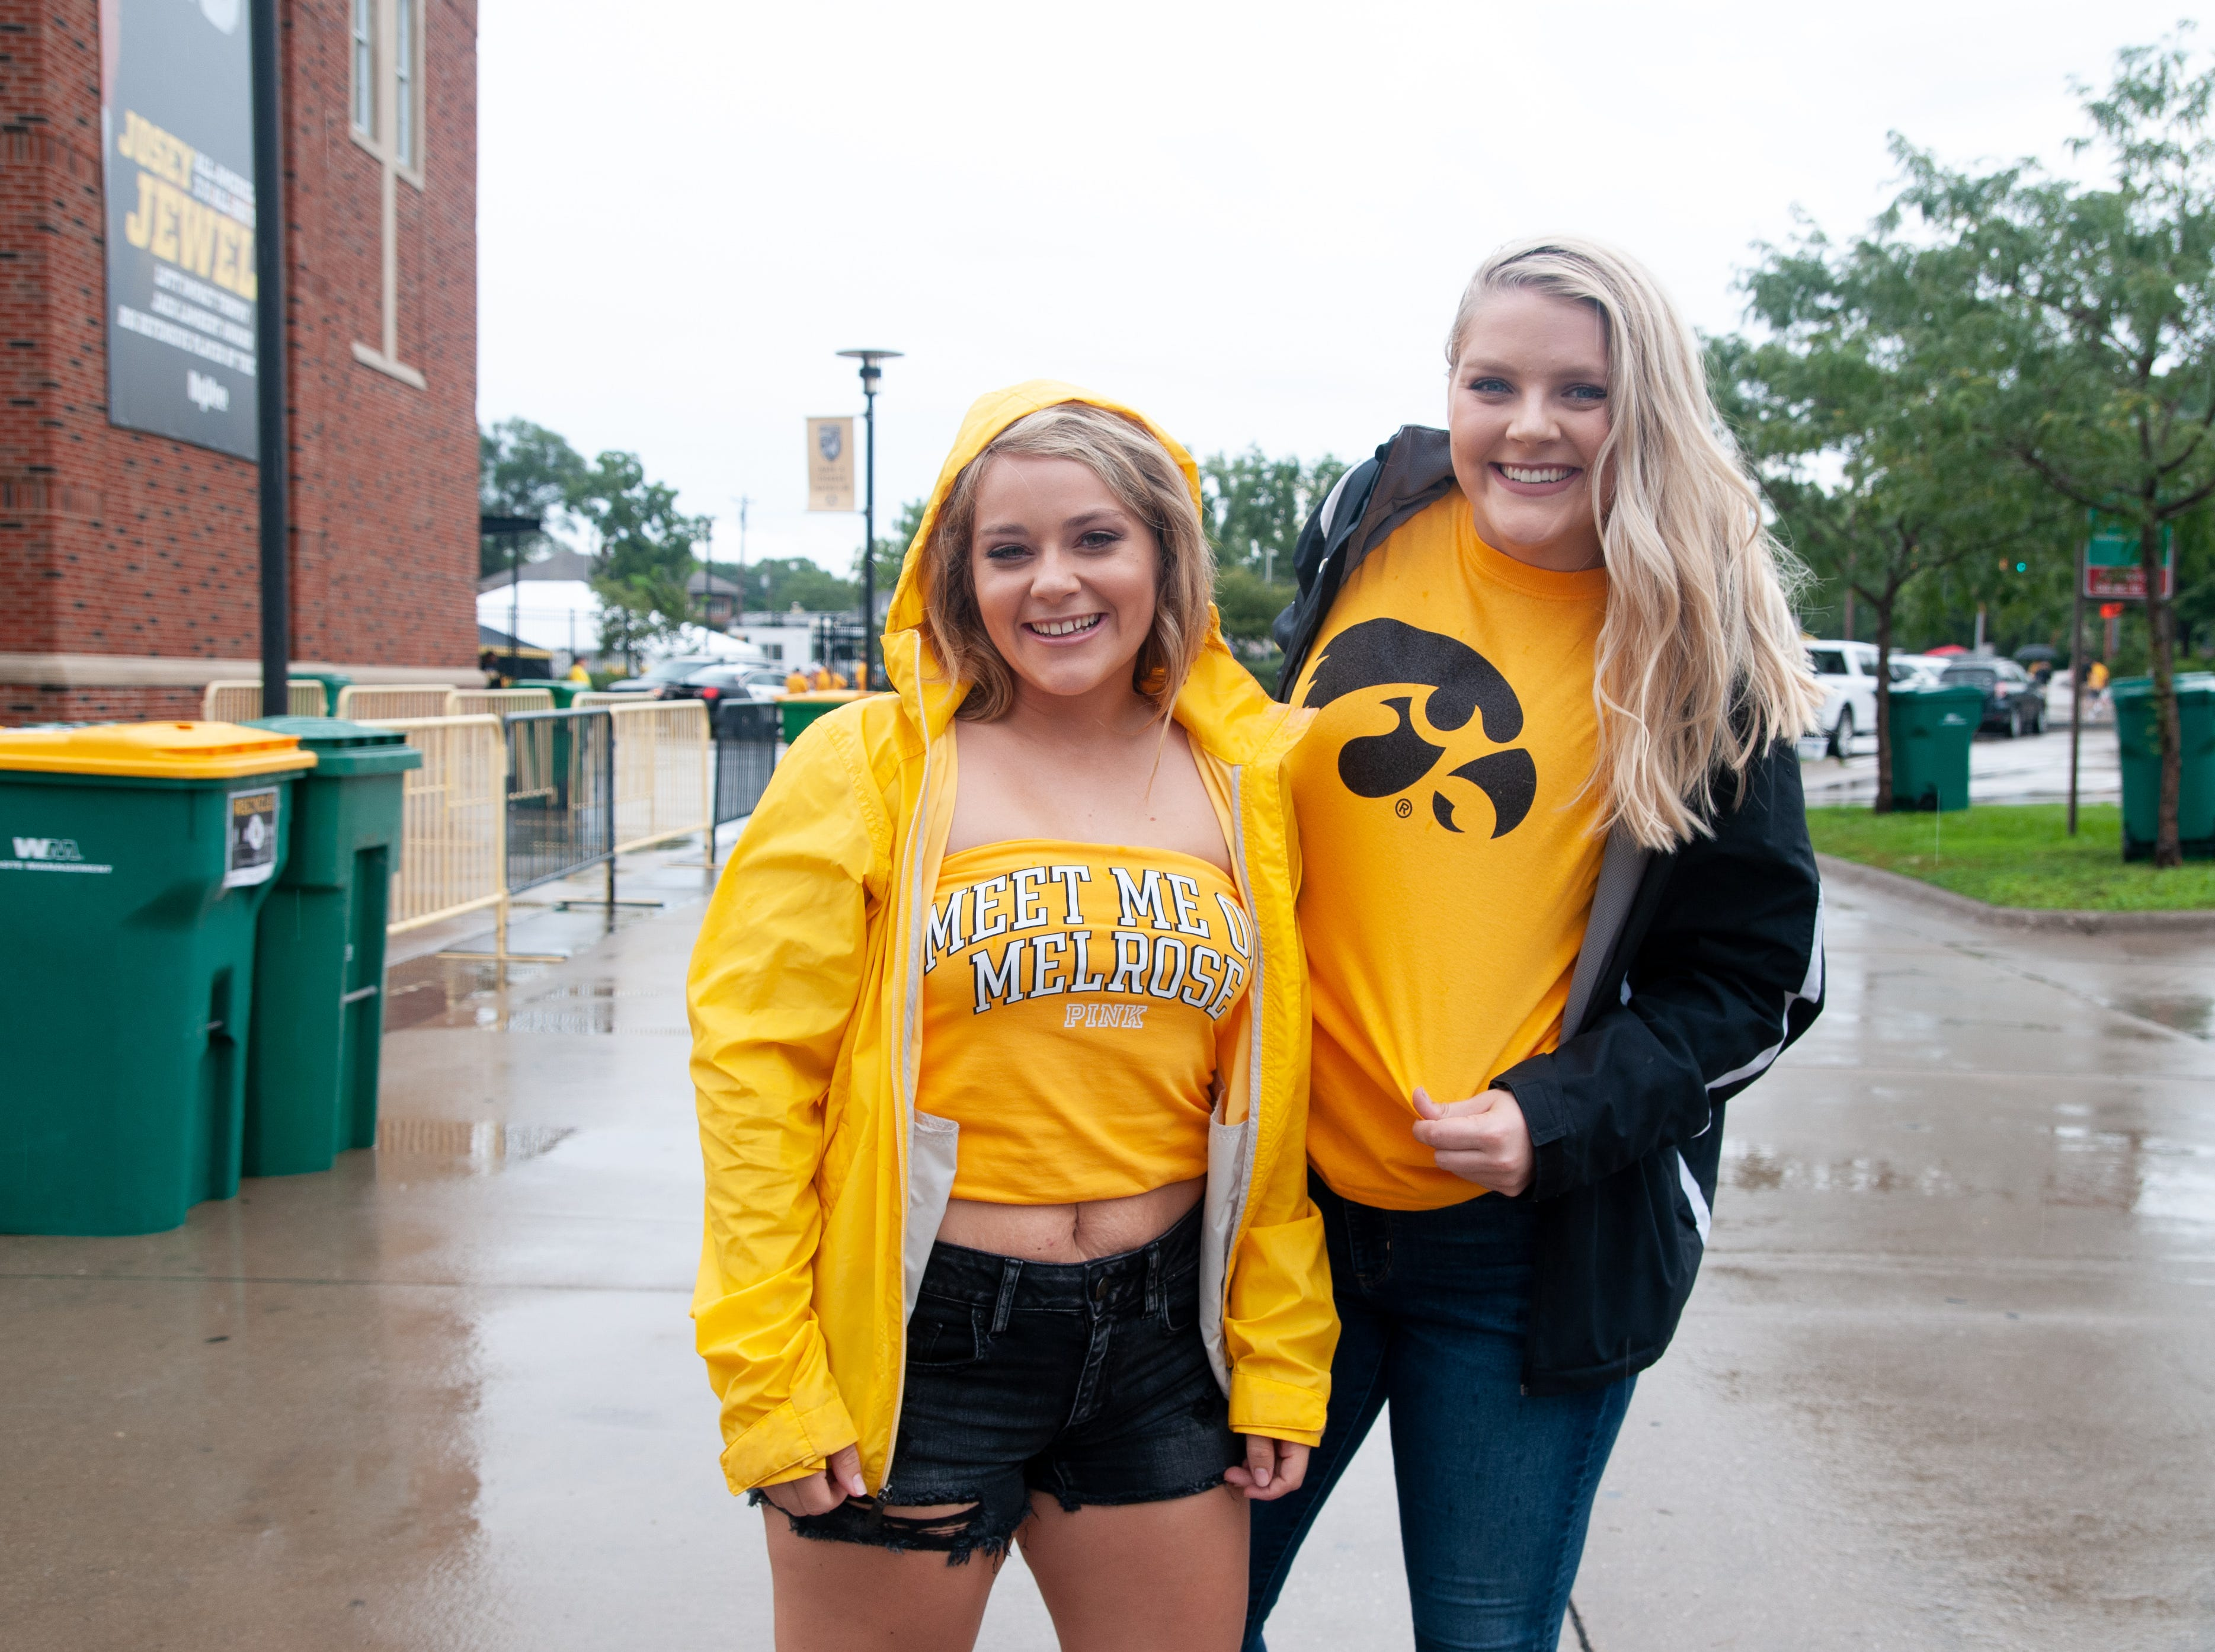 Jayme Brownlee, 22, (left), and Paige Davidson, 22, of Ottumwa, Saturday, Sept. 1, 2018, while tailgating before the Iowa game against Northern Illinois in Iowa City.